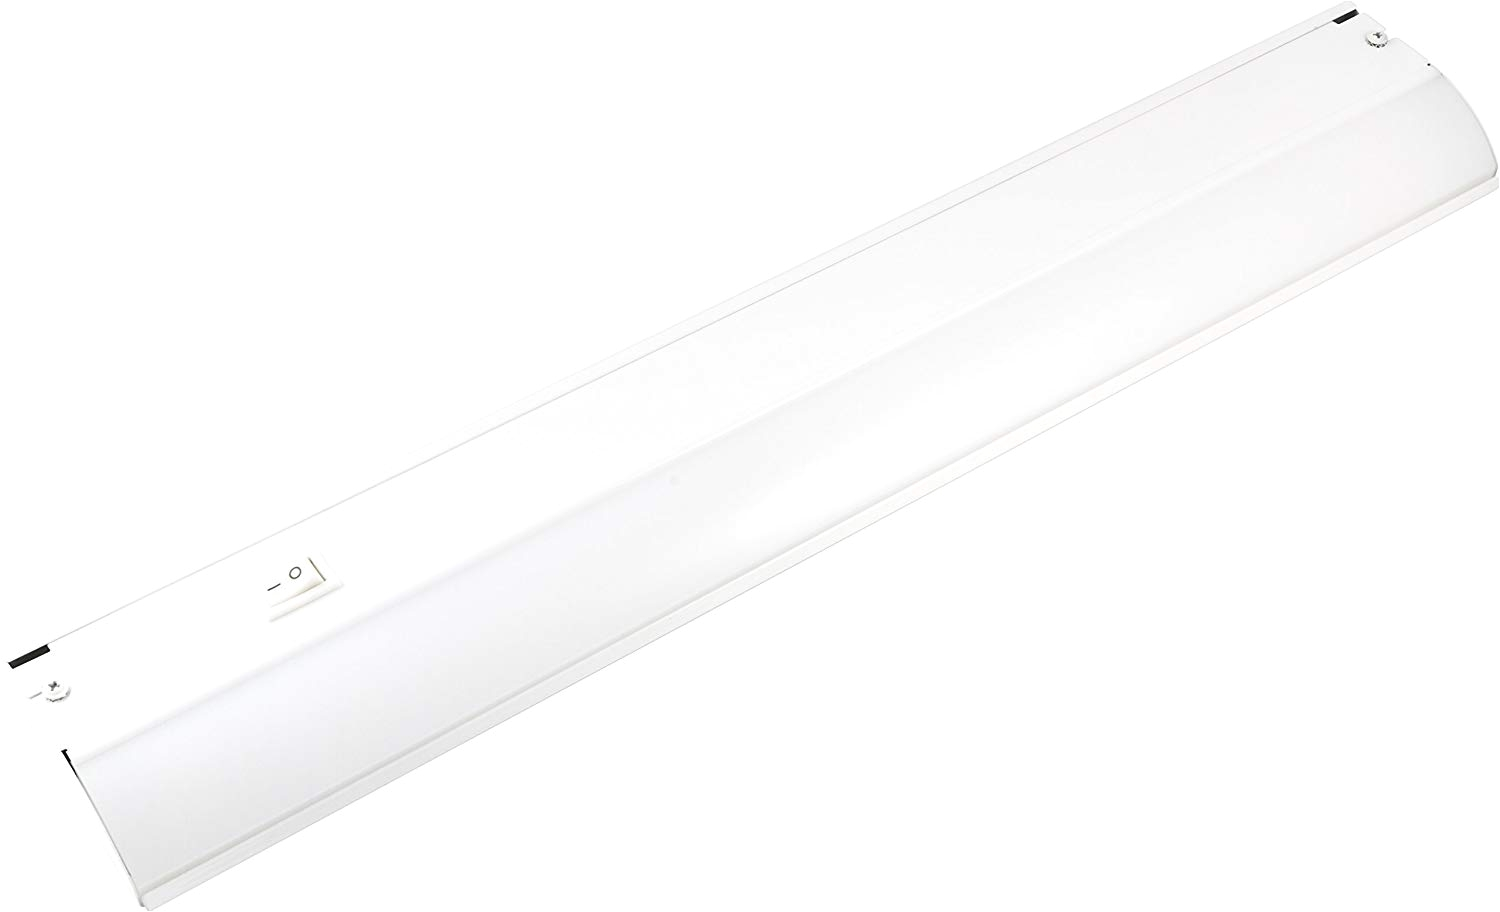 ge 36 inch led under cabinet light fixture 38981 direct wire in wall dimmer compatible 991 lumens 3000k soft white steel housing white finish